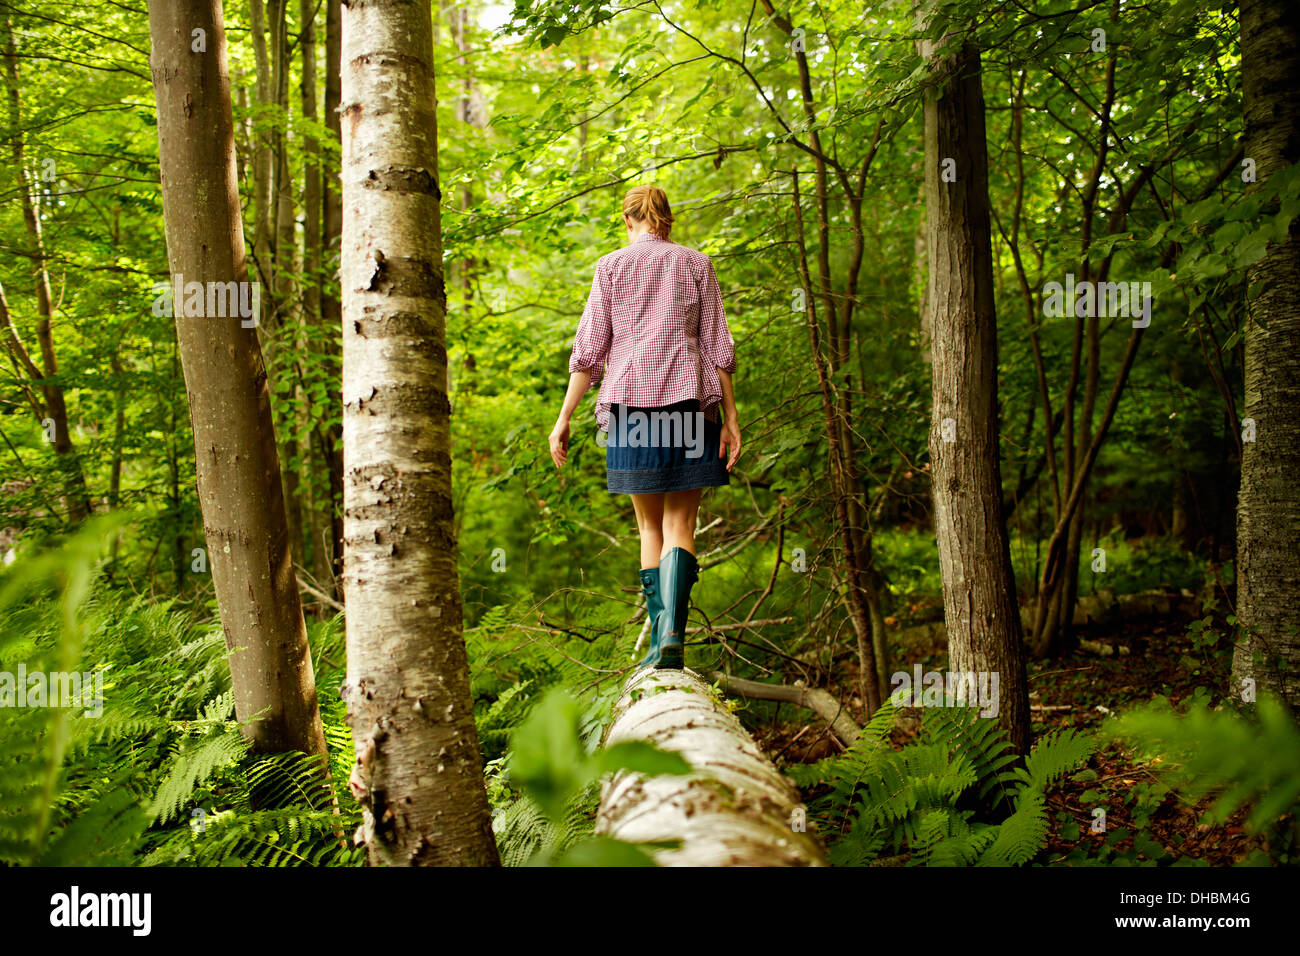 A woman in wellingtons walking along a fallen tree trunk, in woodland. - Stock Image